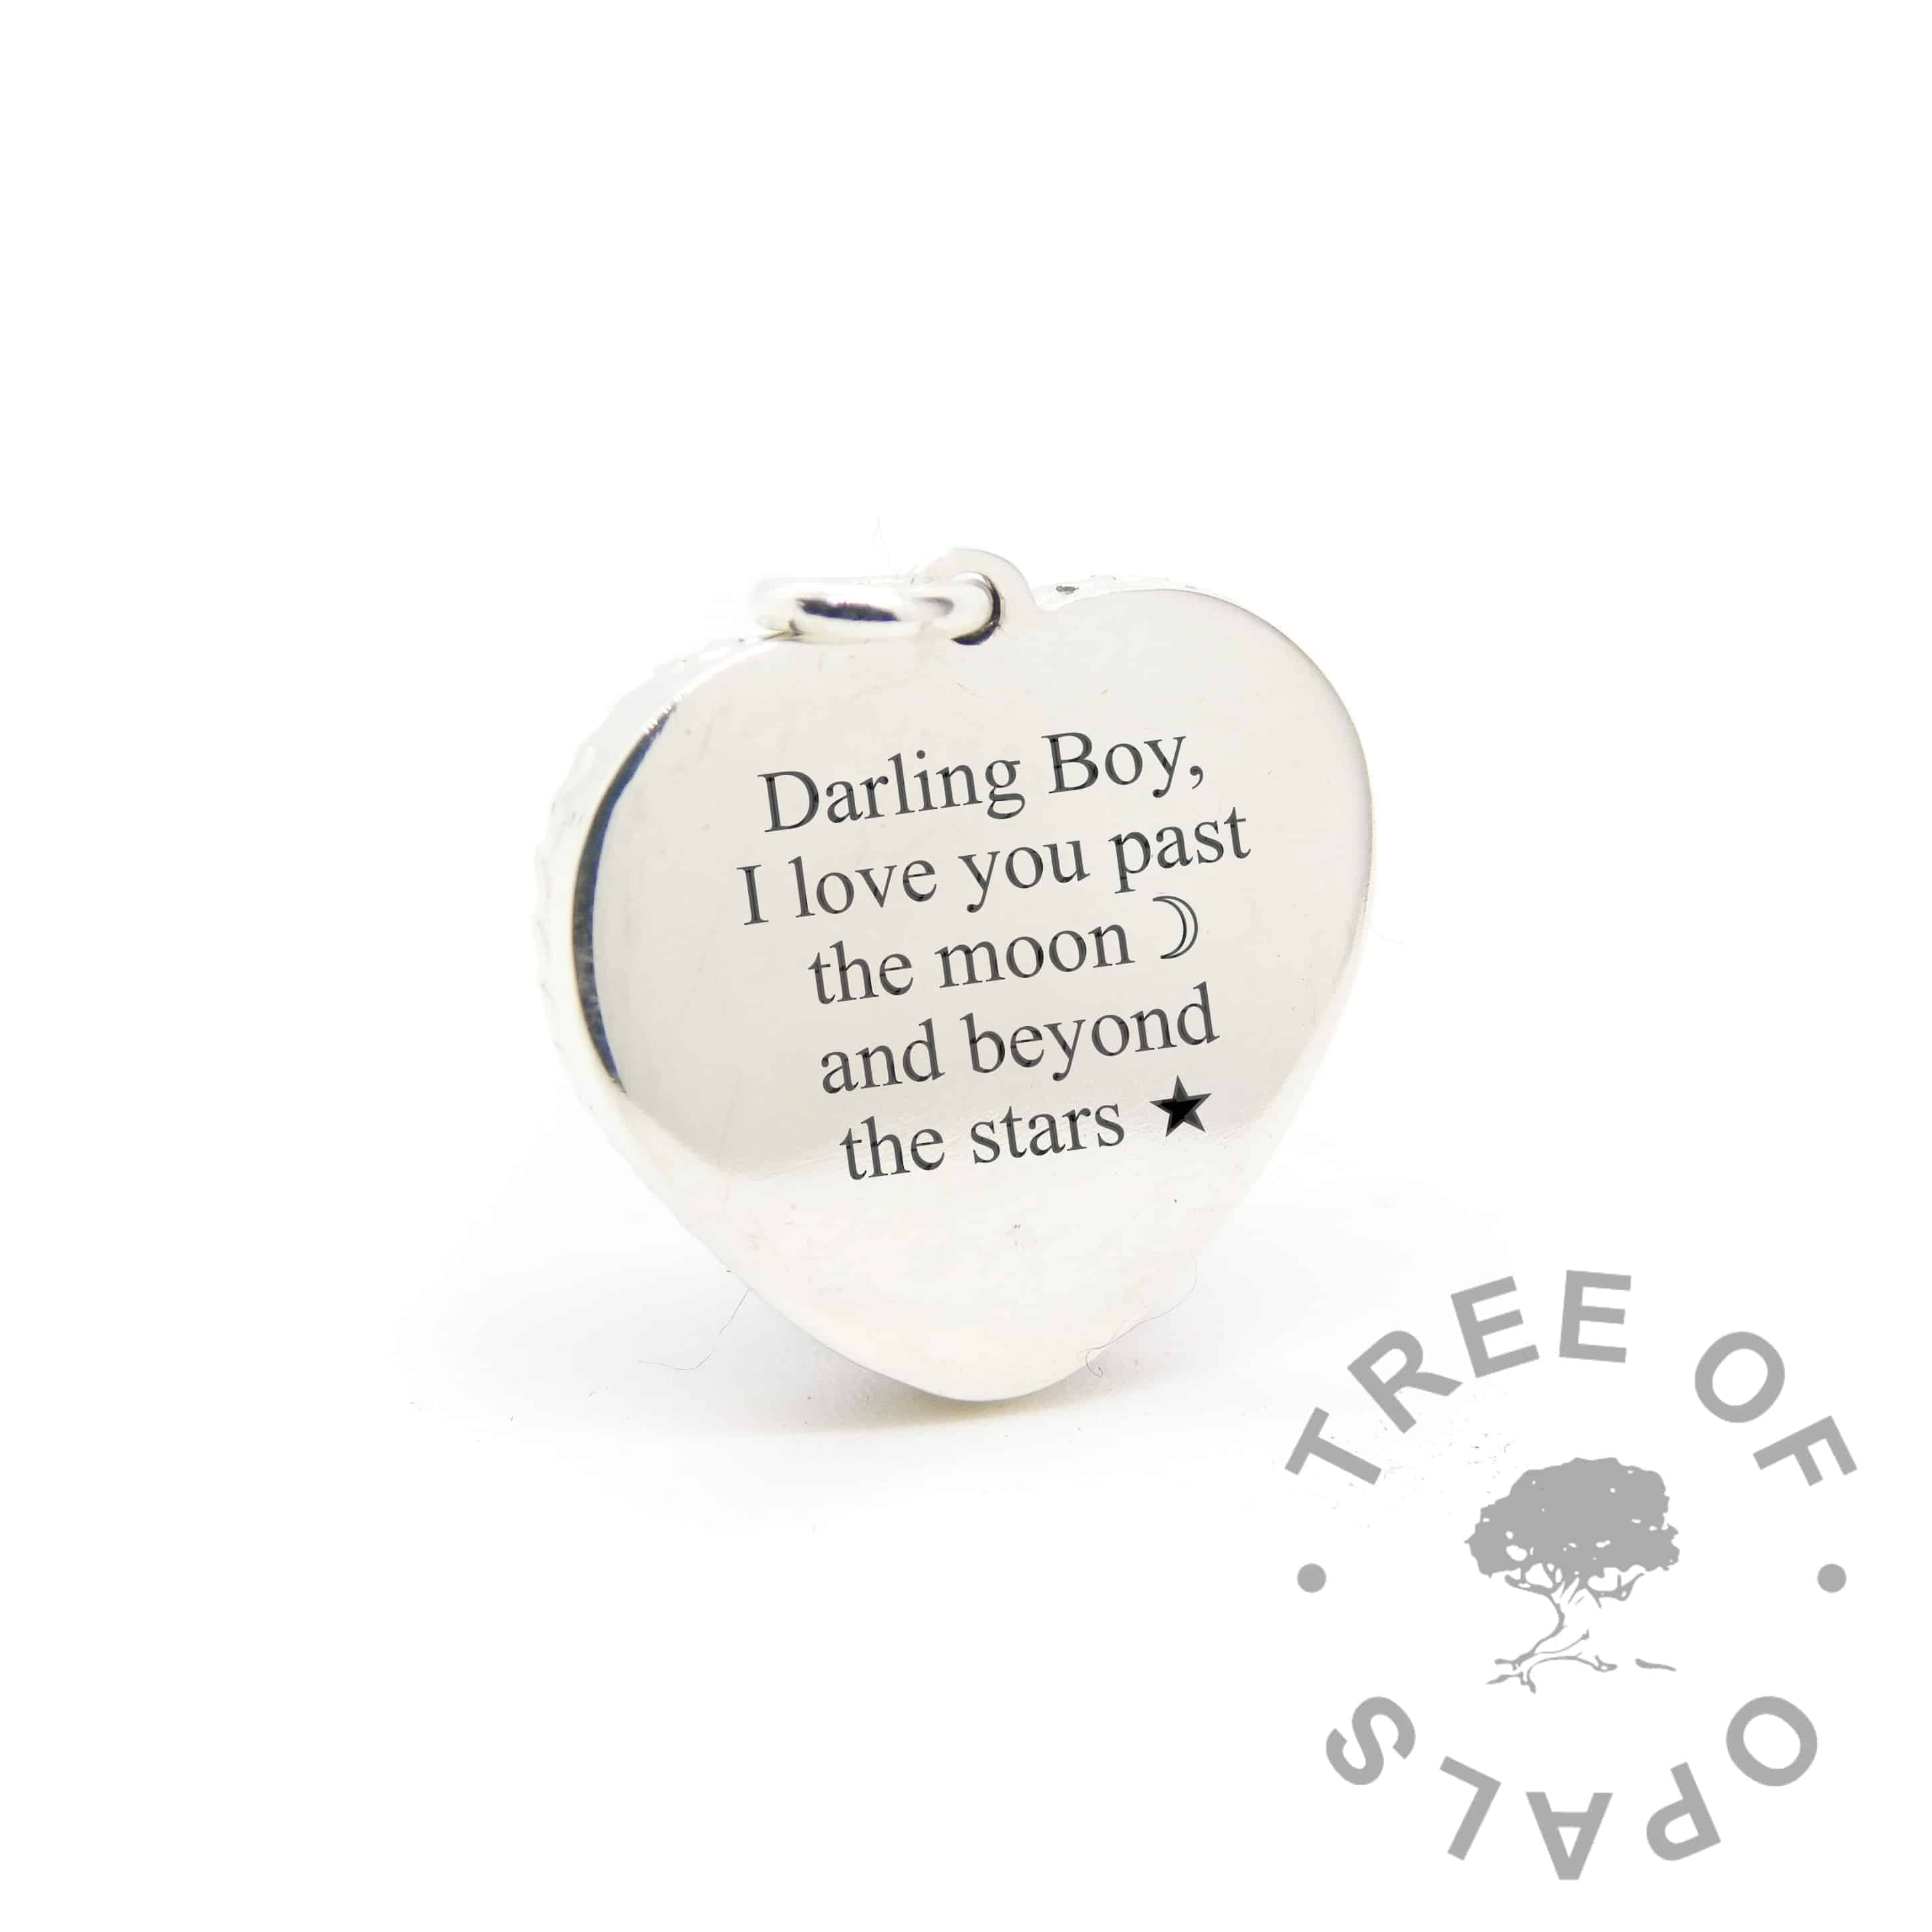 new style heart necklace back, engraving in Times New Roman font with moon and stars emojis (engraving mockup)